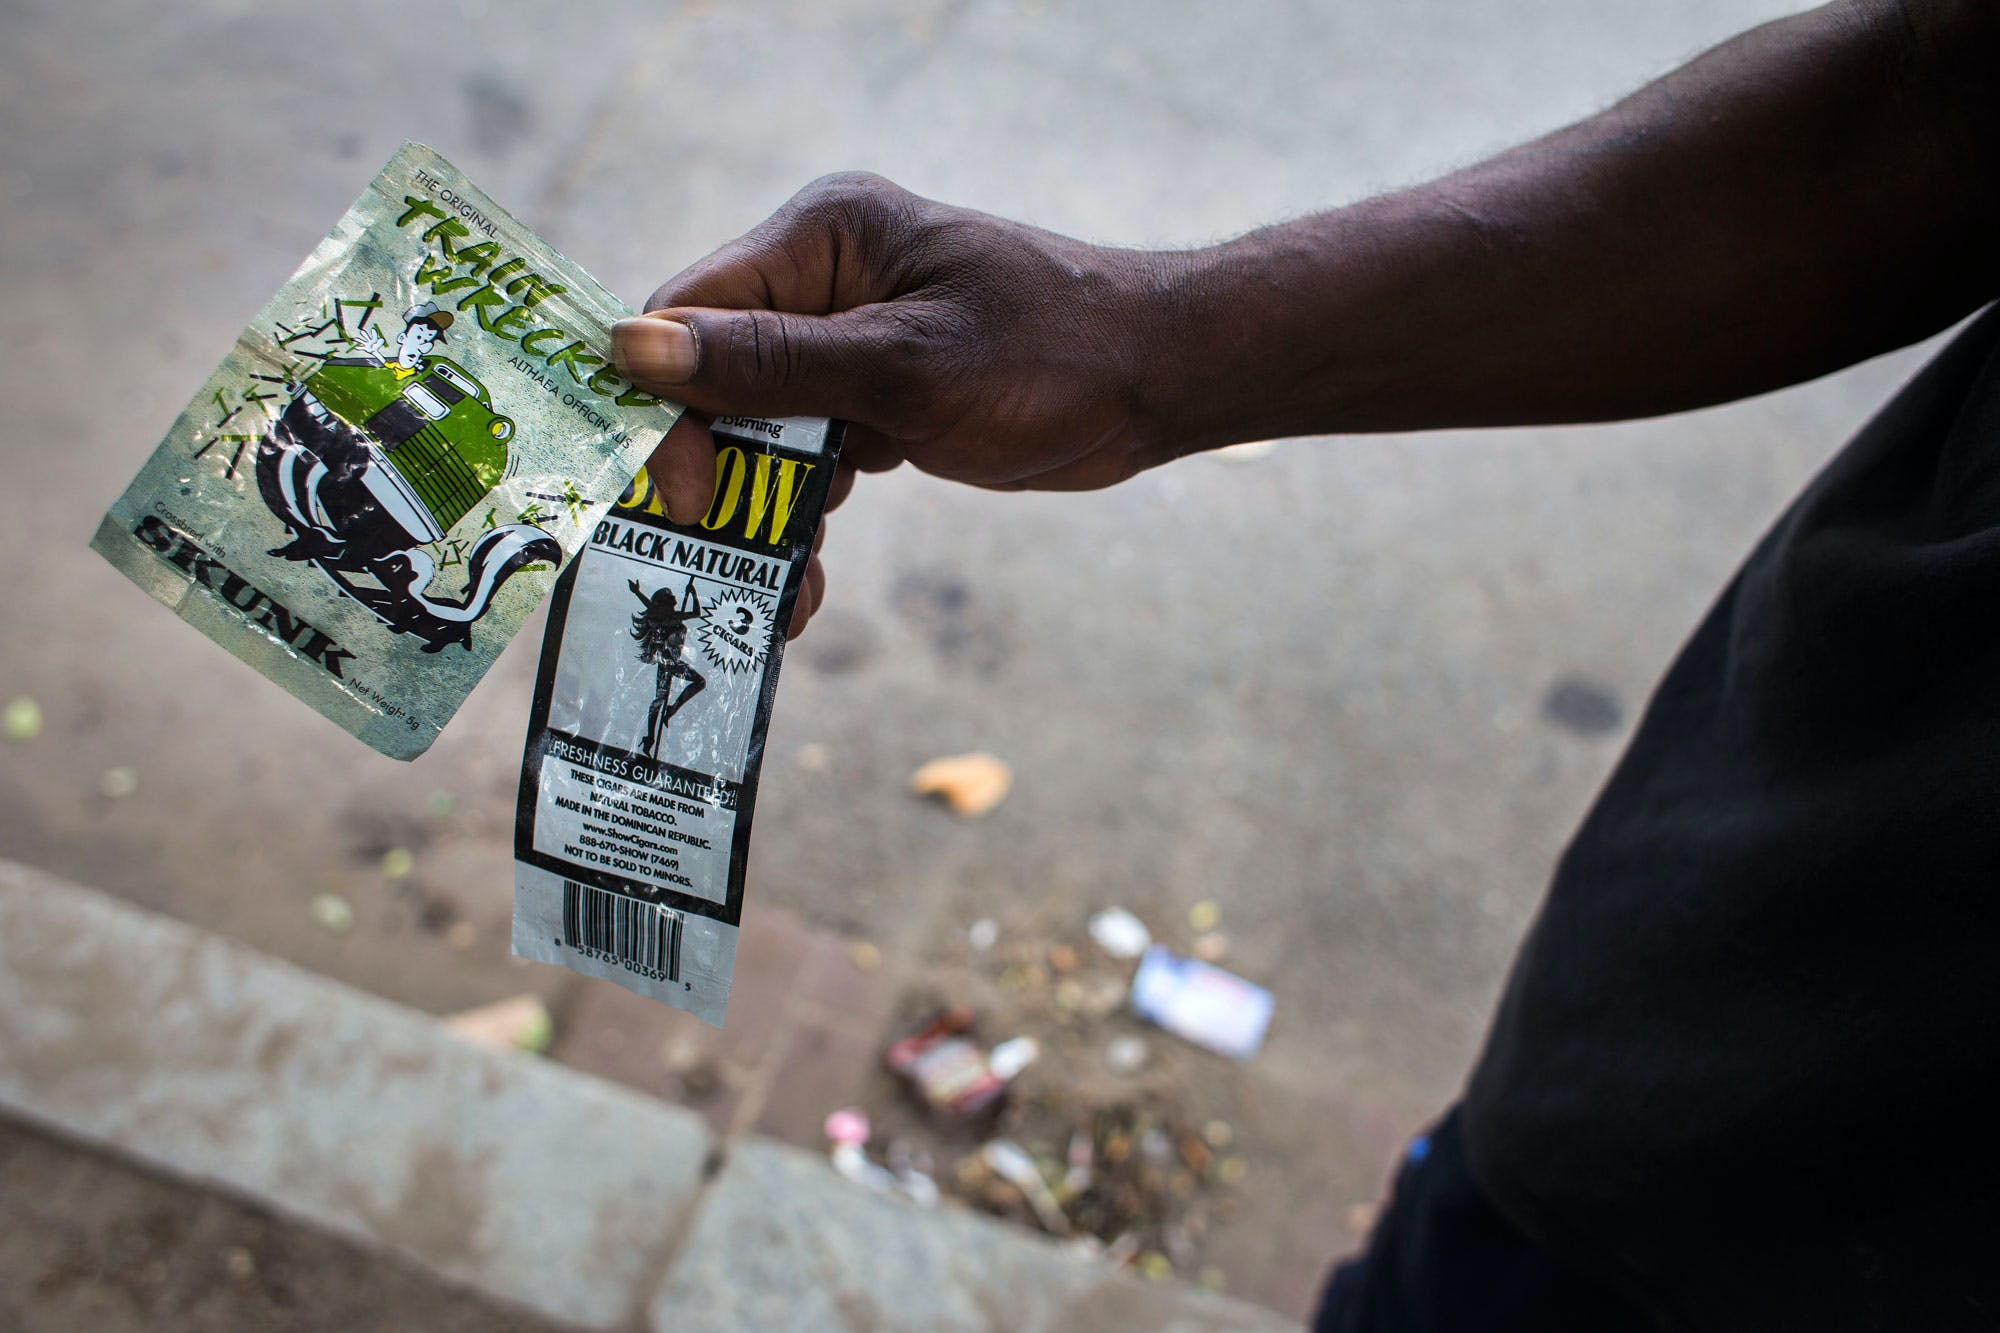 More people hospitalized by synthetic cannabis laced with rat poison Caribbean Nations Are Seriously Thinking About Cannabis Decriminalization